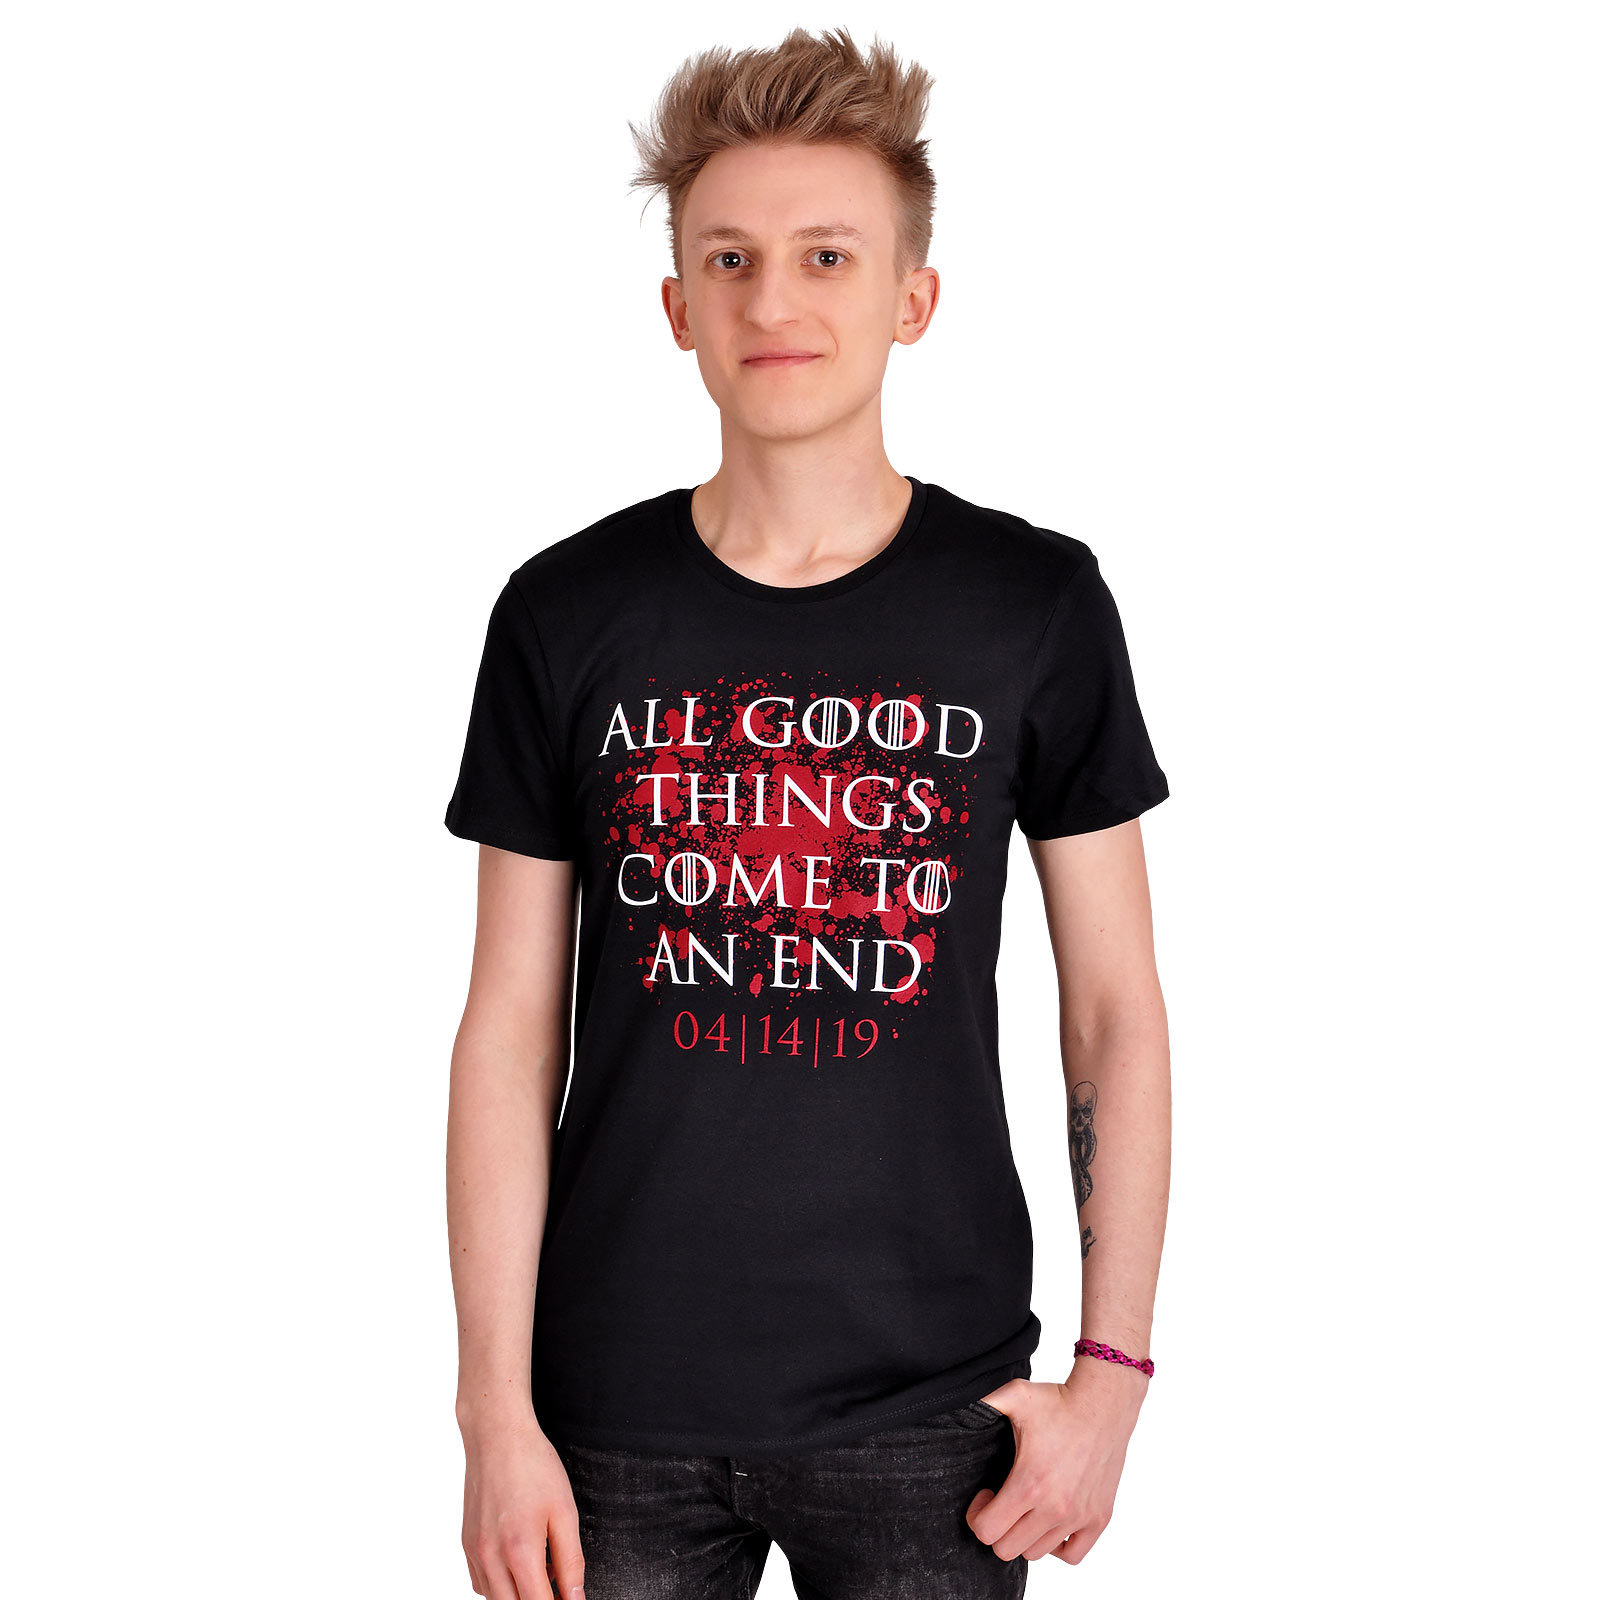 All Good Things Come to an End T-Shirt für Game of Thrones Fans